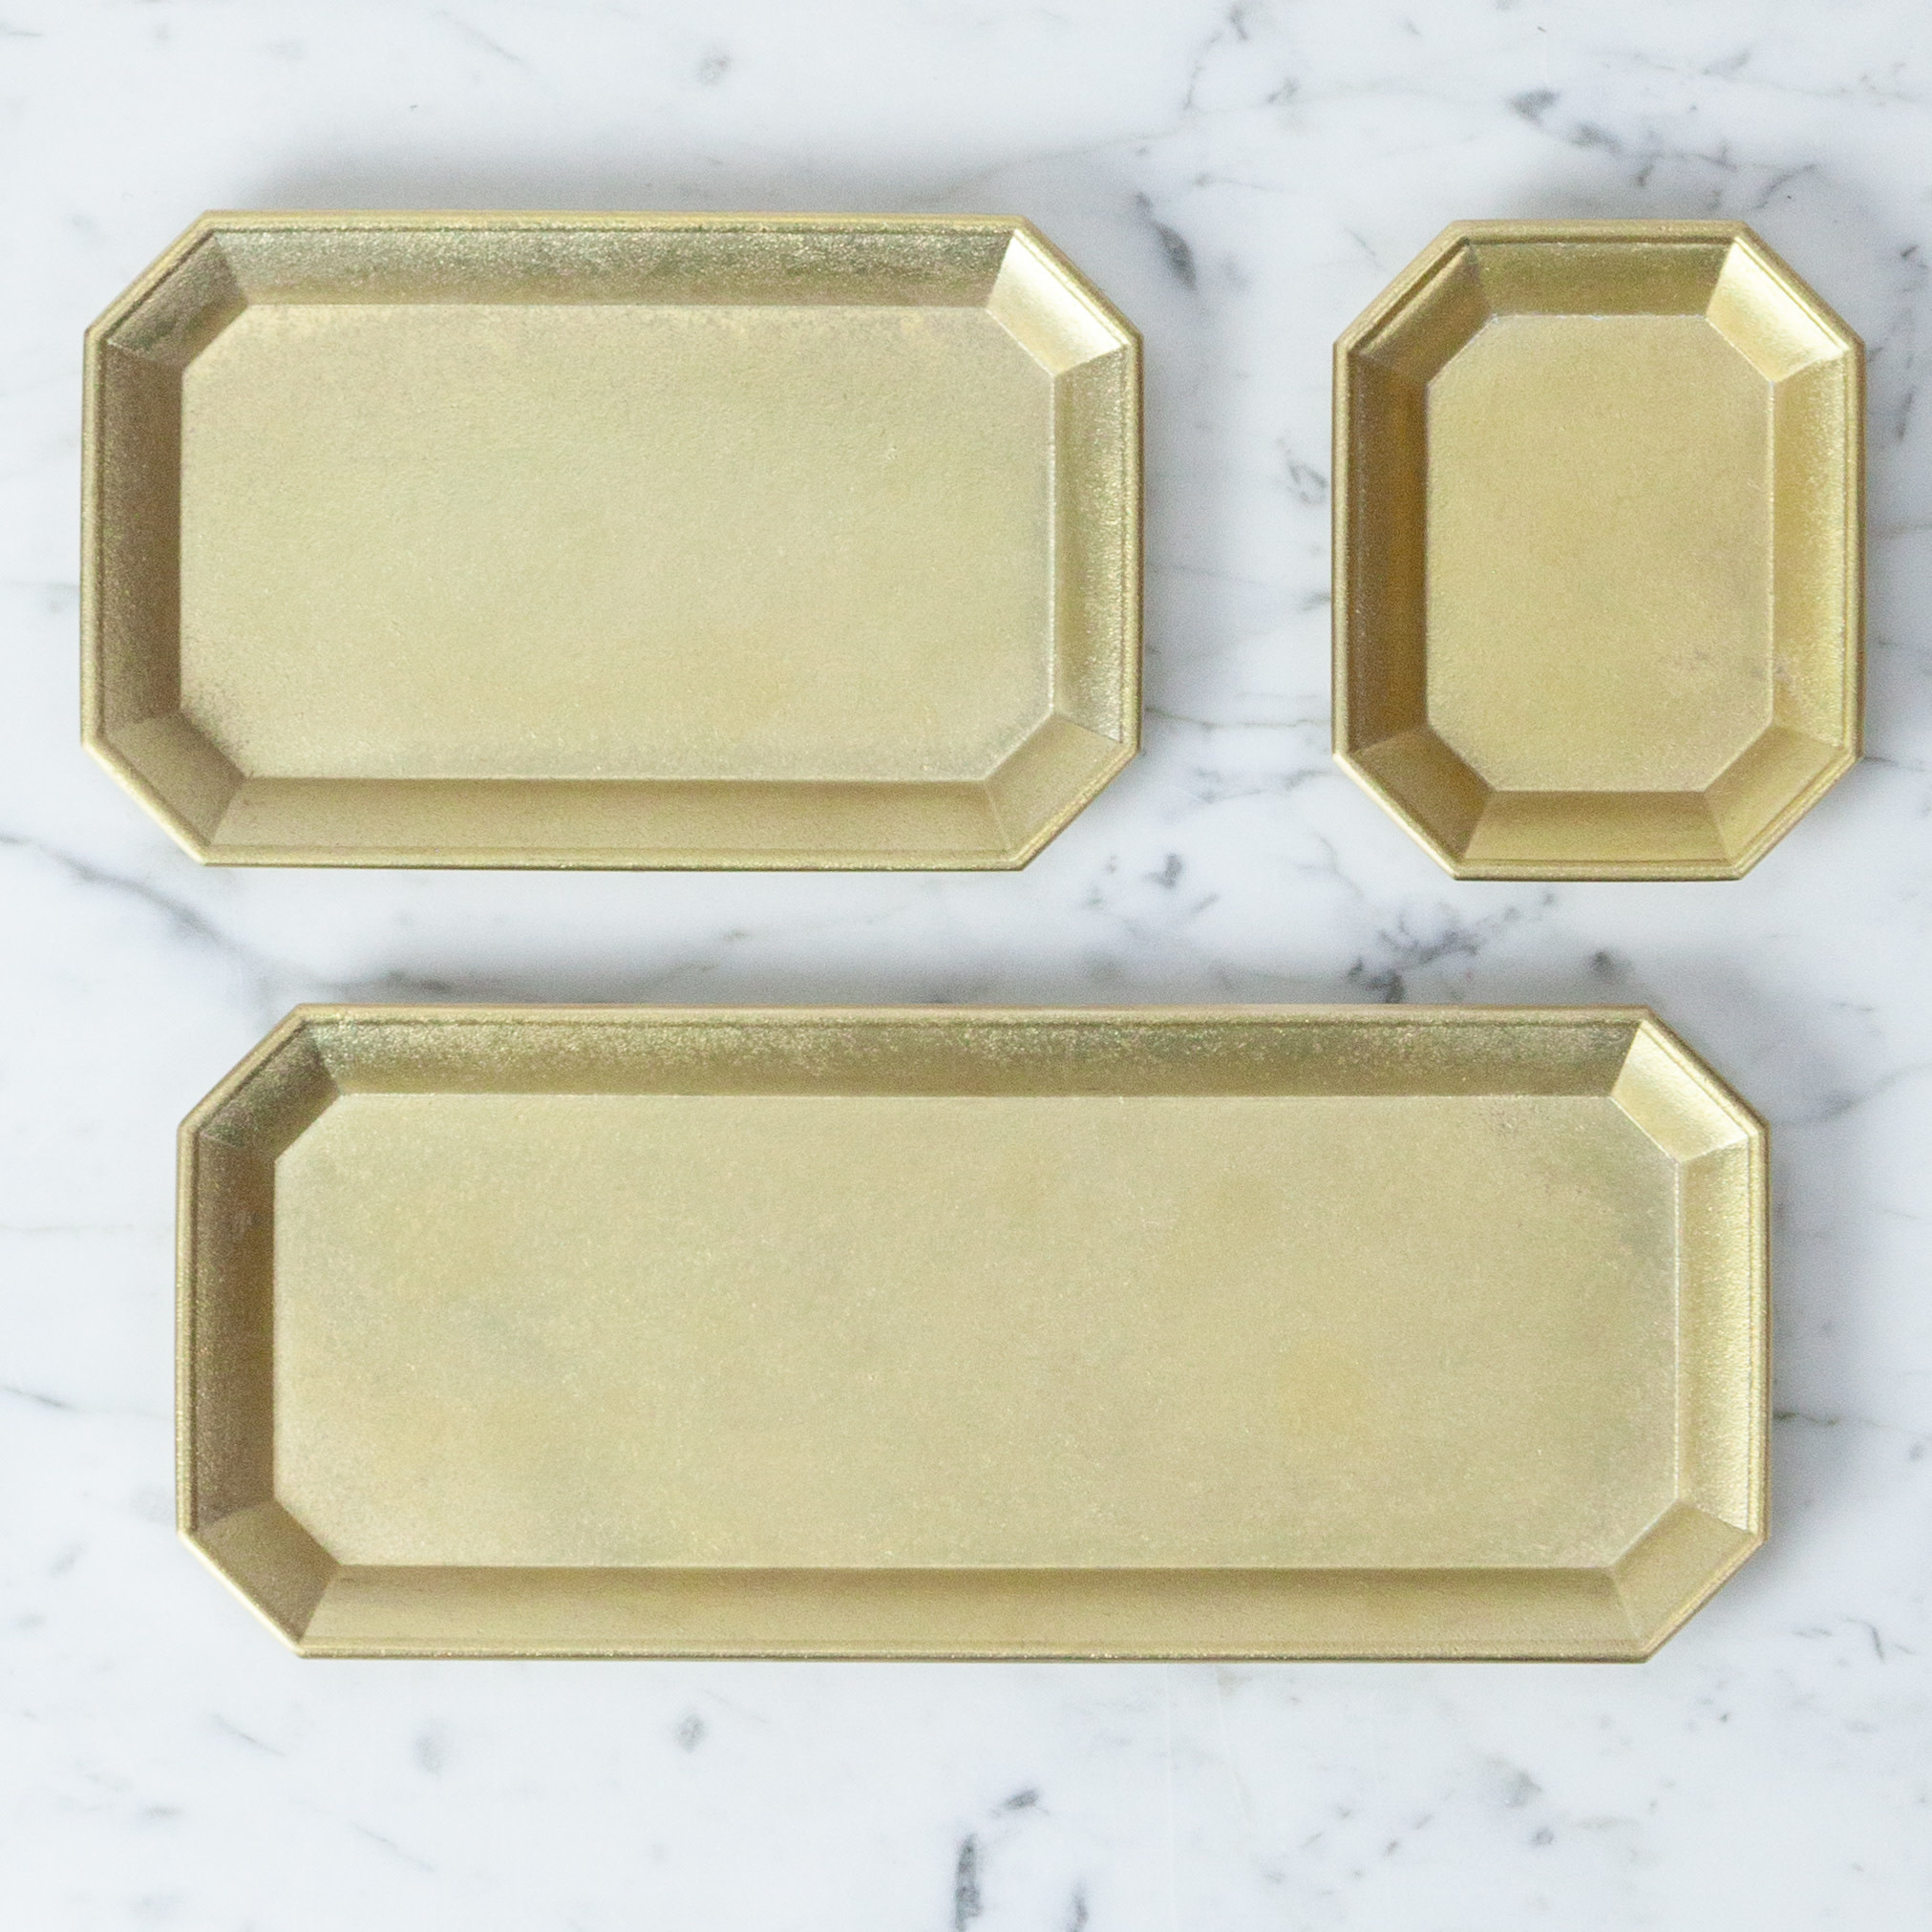 FUTAGAMI Futagami Brass Stationery Tray - Medium - 5.5""